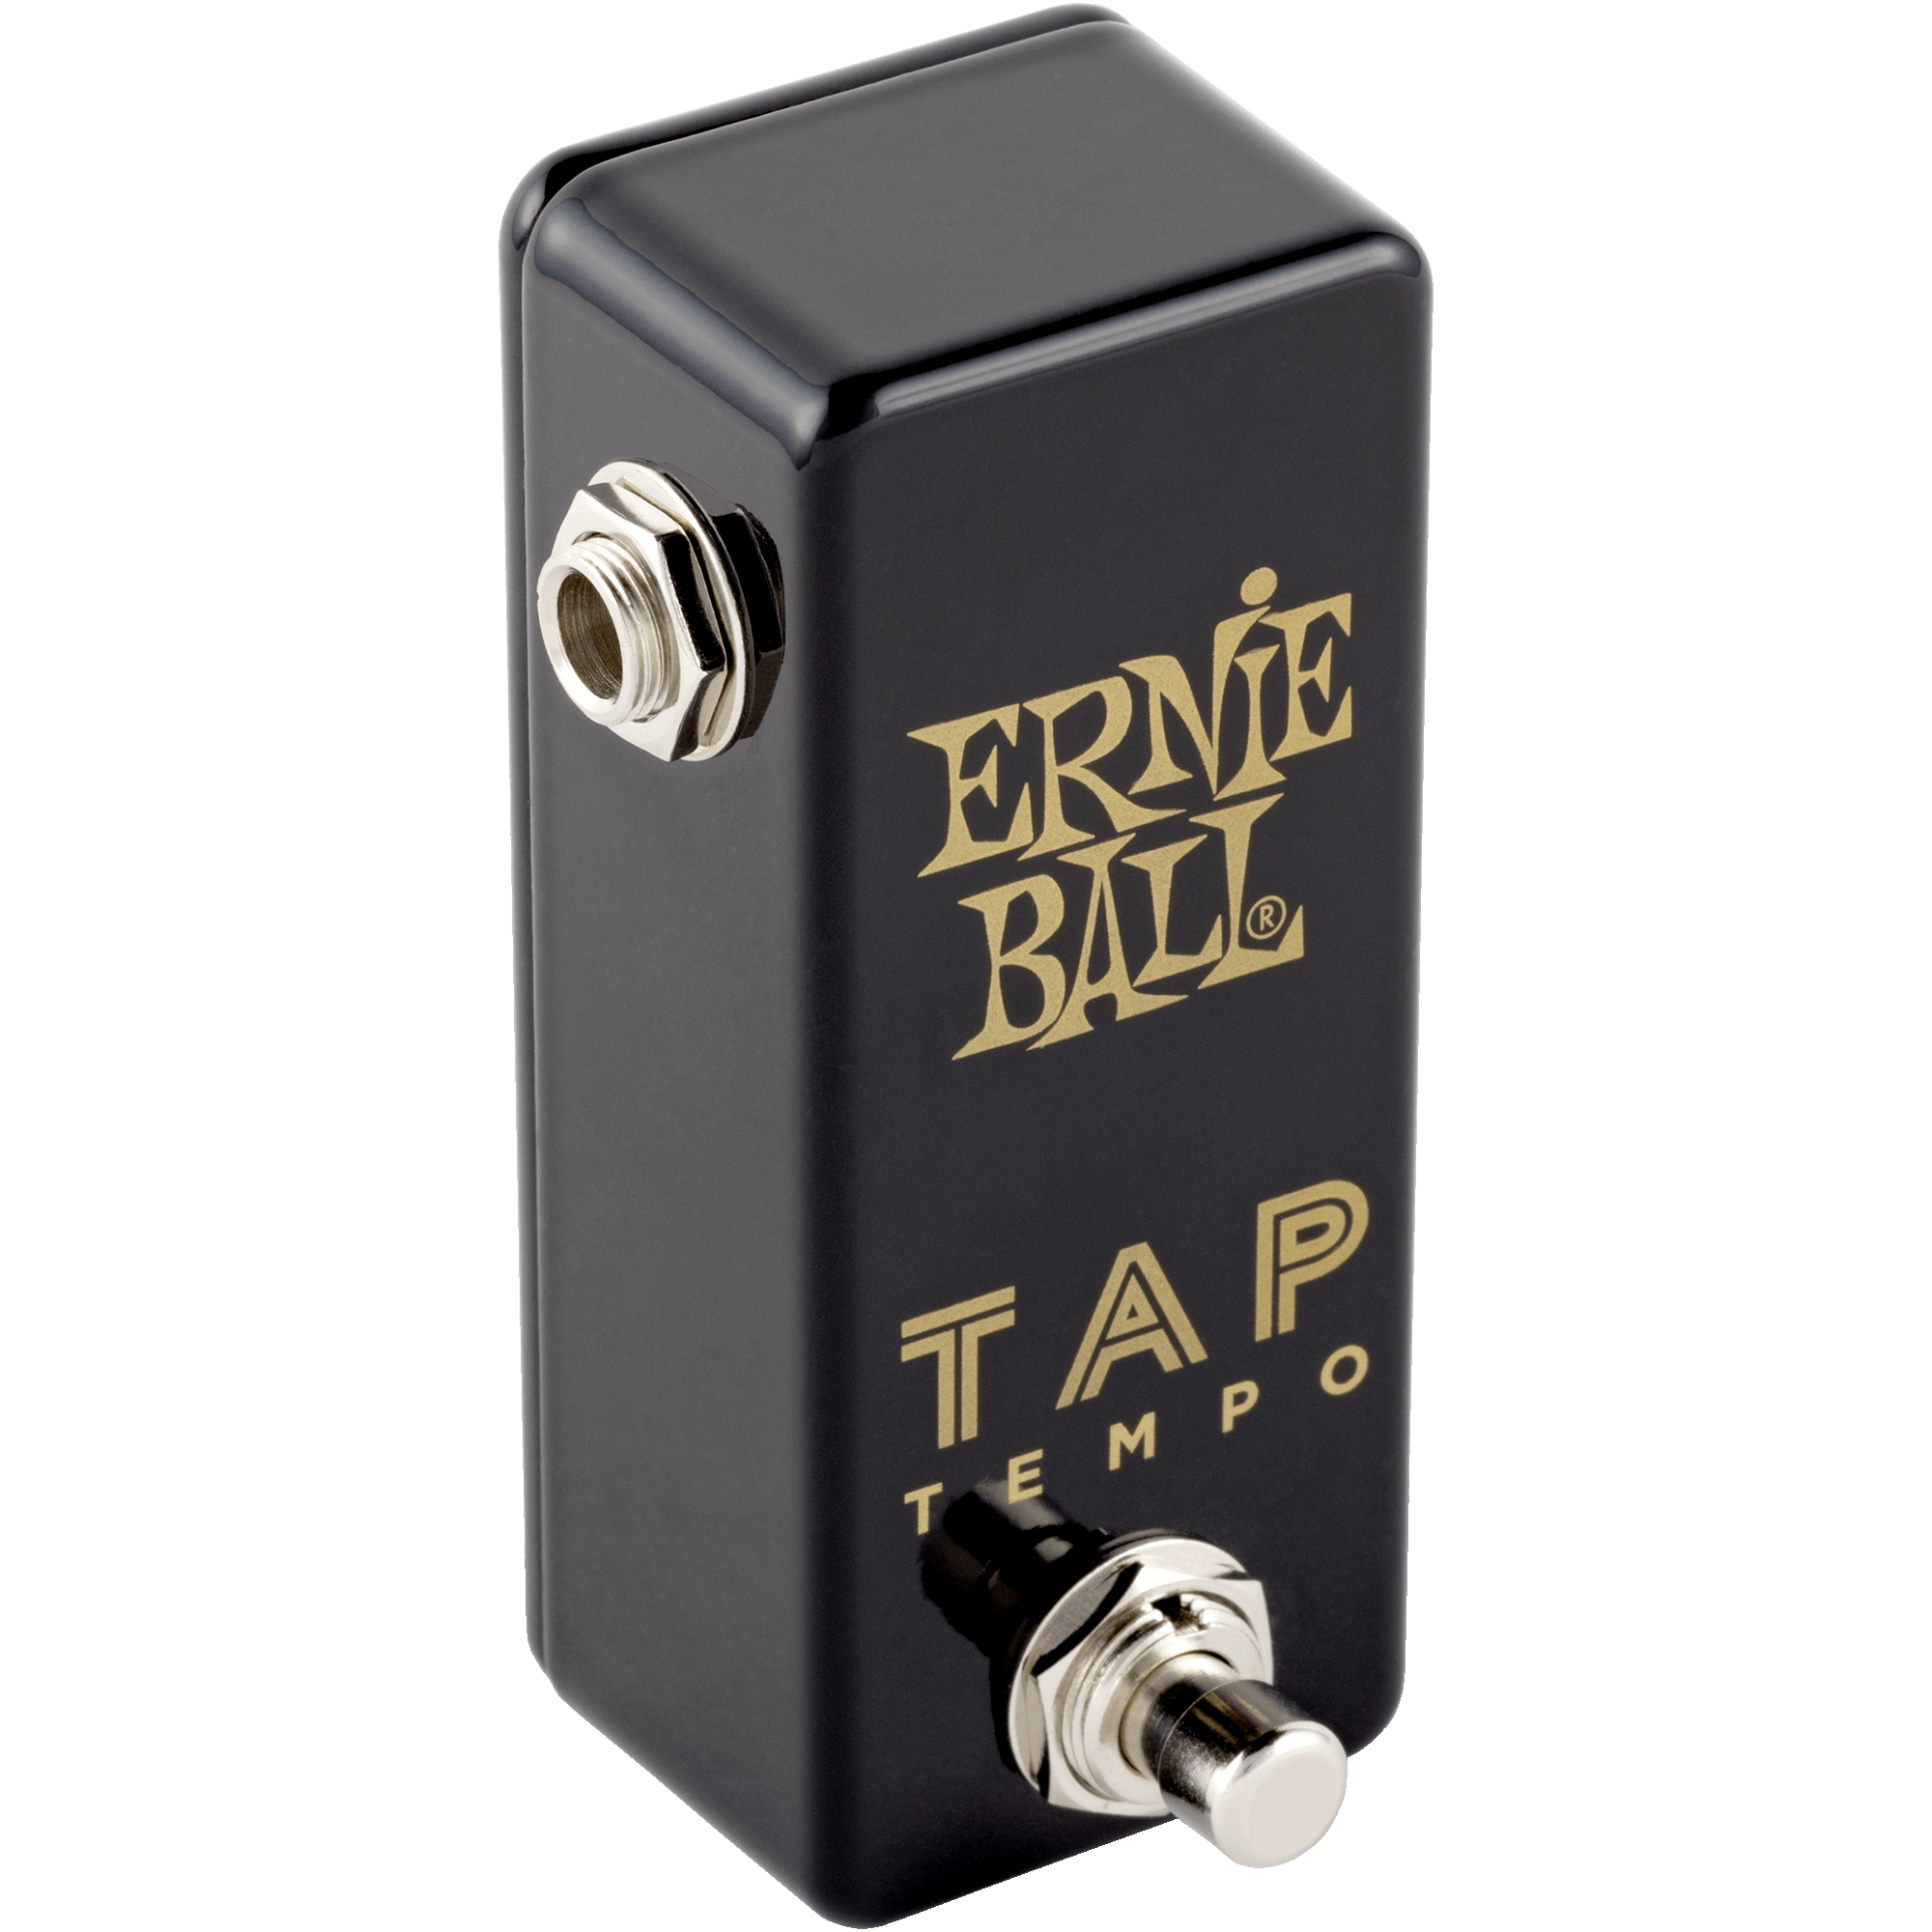 Ernie Ball 6186 Tap Tempo foot switch